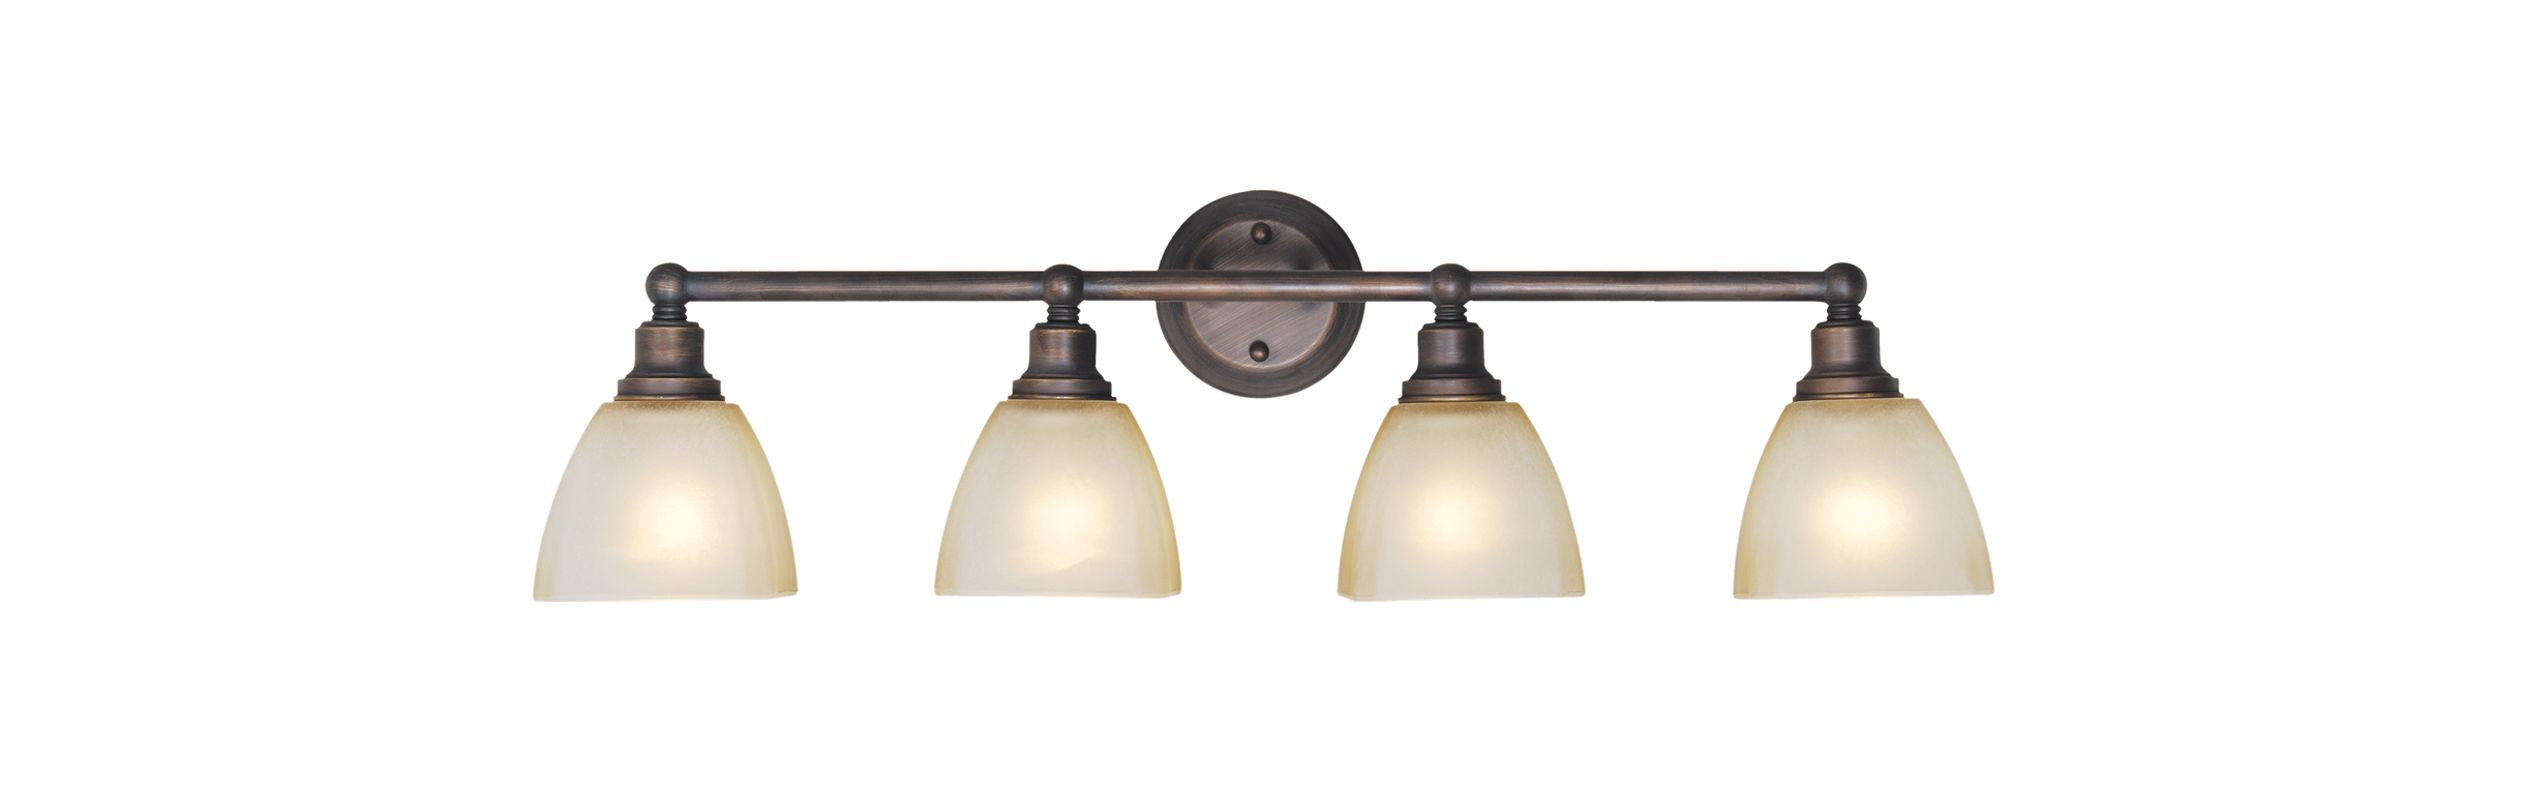 Jeremiah Lighting 26604 Bradley 4 Light Bathroom Vanity Light - 32.65 Sale $169.00 ITEM: bci1554492 ID#:26604-BZ UPC: 80629804647 :